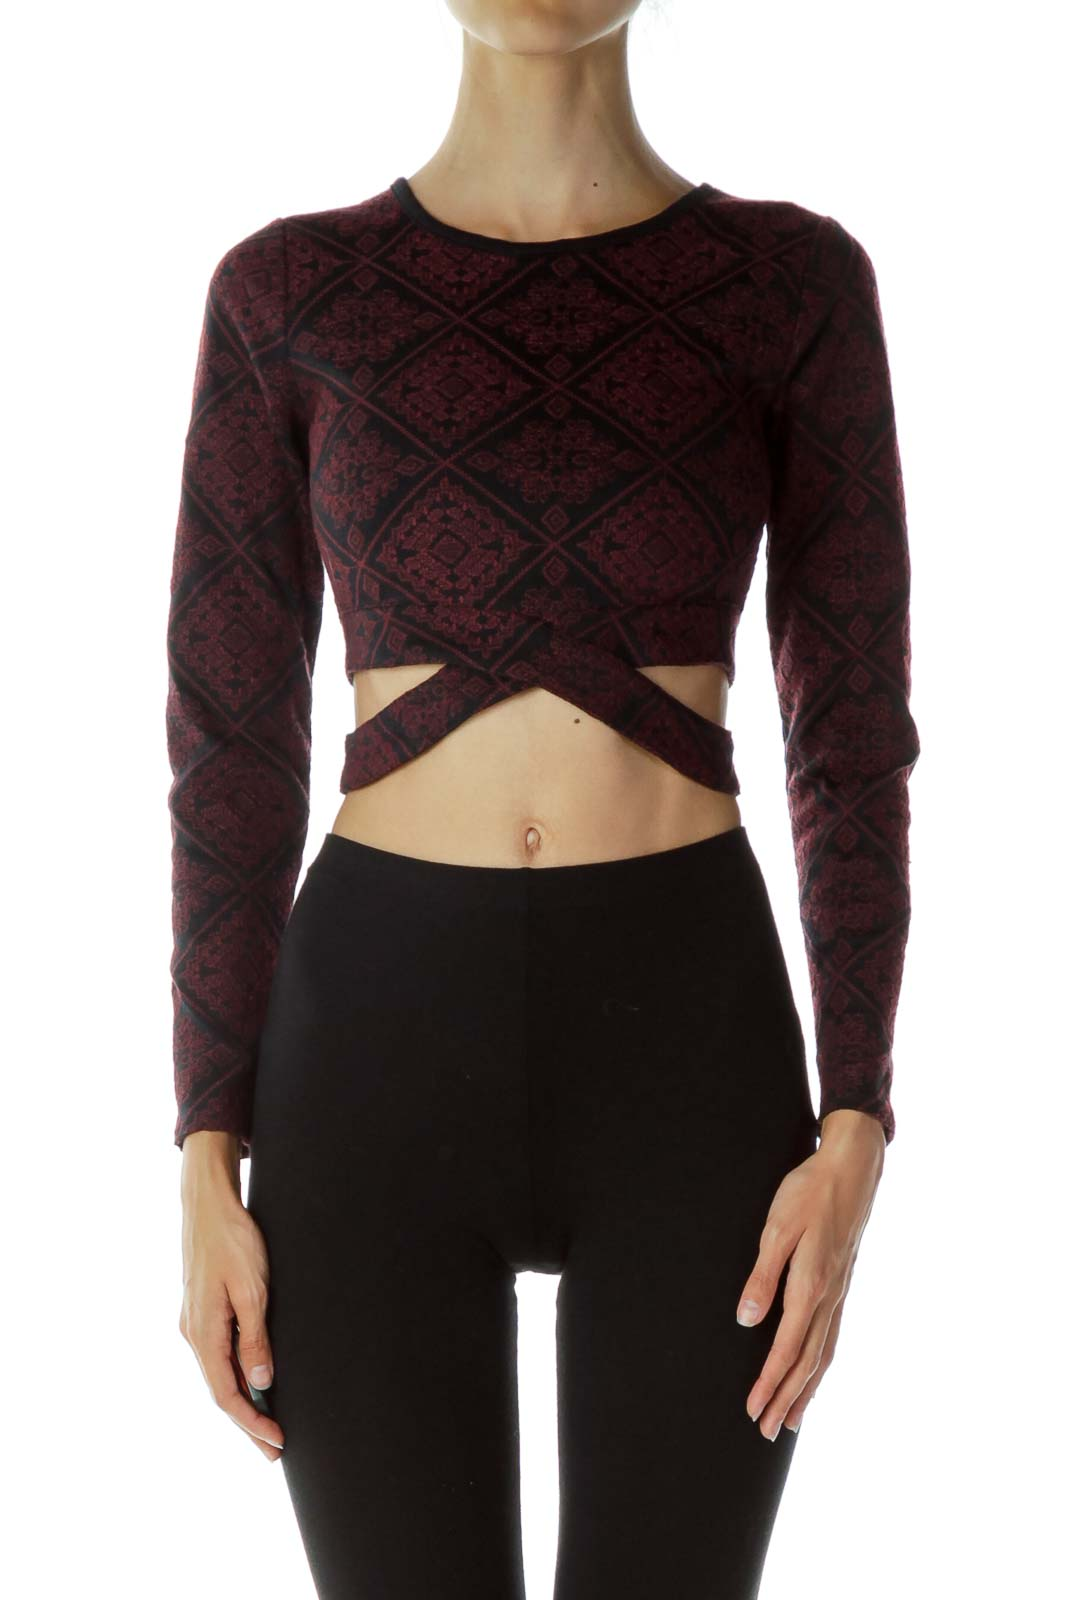 Red & Black Embroidered Crop Top